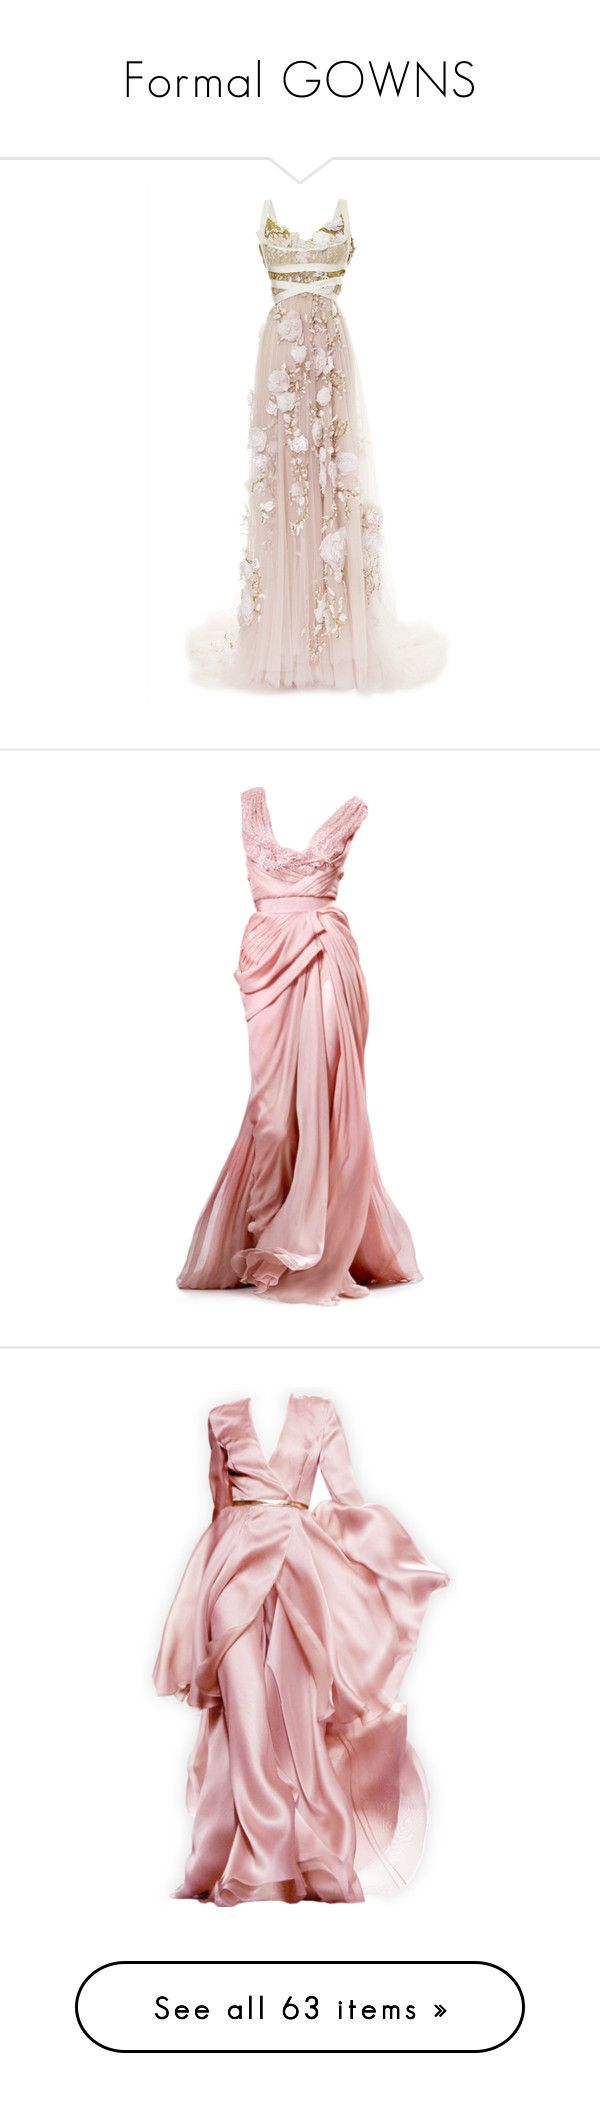 """Formal GOWNS"" by wanda-india-acosta ❤ liked on Polyvore featuring dresses, gowns, white dress, silk gown, white evening gowns, empire waist dress, white wrap dress, long dress, pink and pink dress"